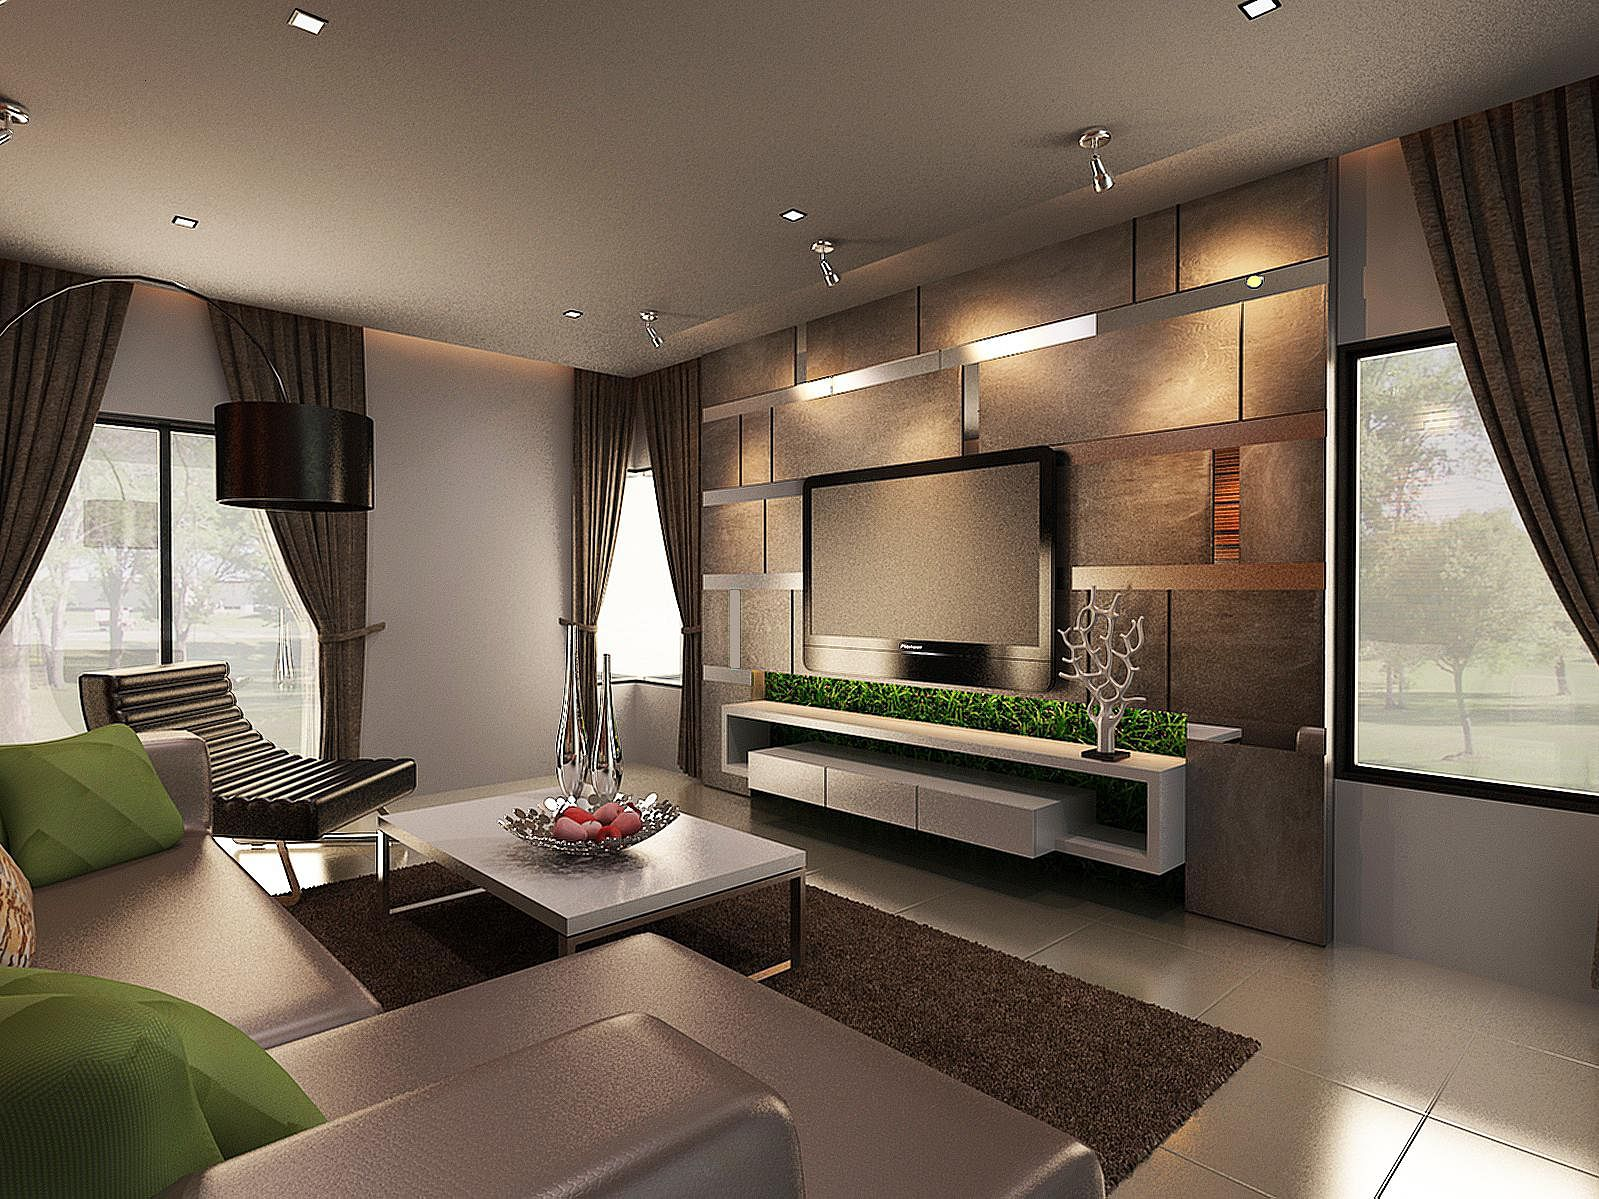 Bto home decor singapore Pictures of new homes interior